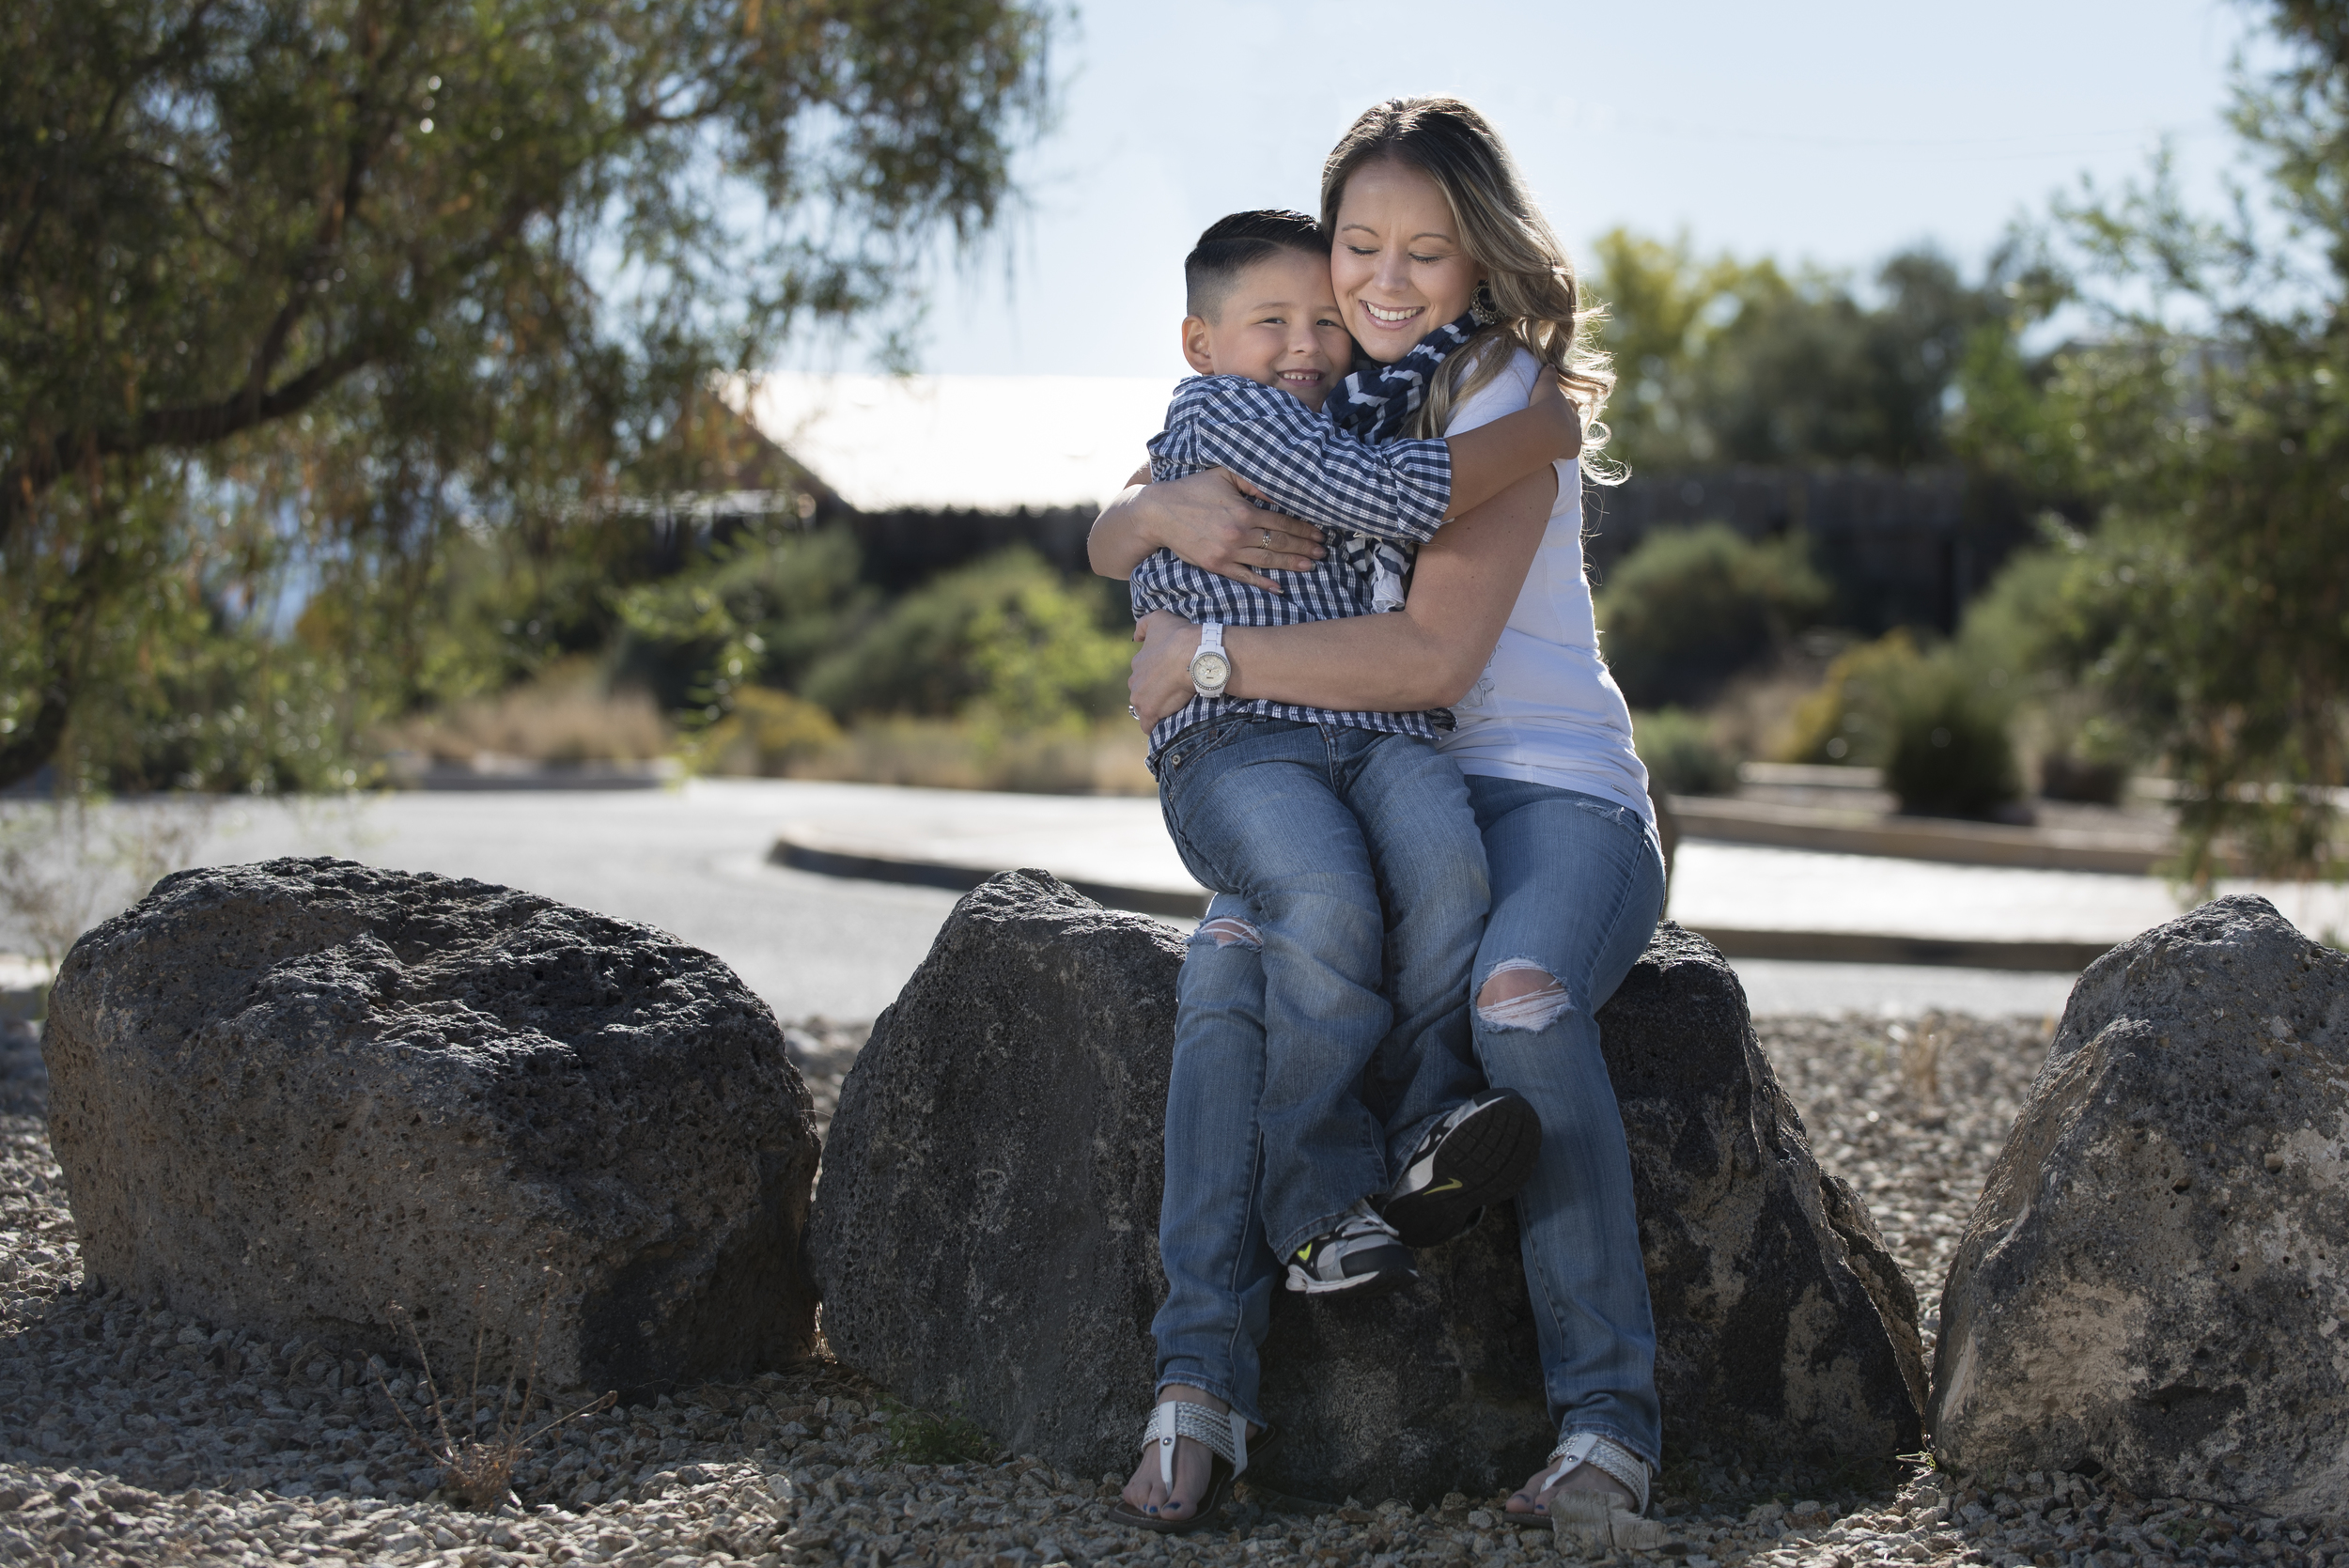 Albuquerque Family Photographer Perez Family copyright 2014 (3).jpg